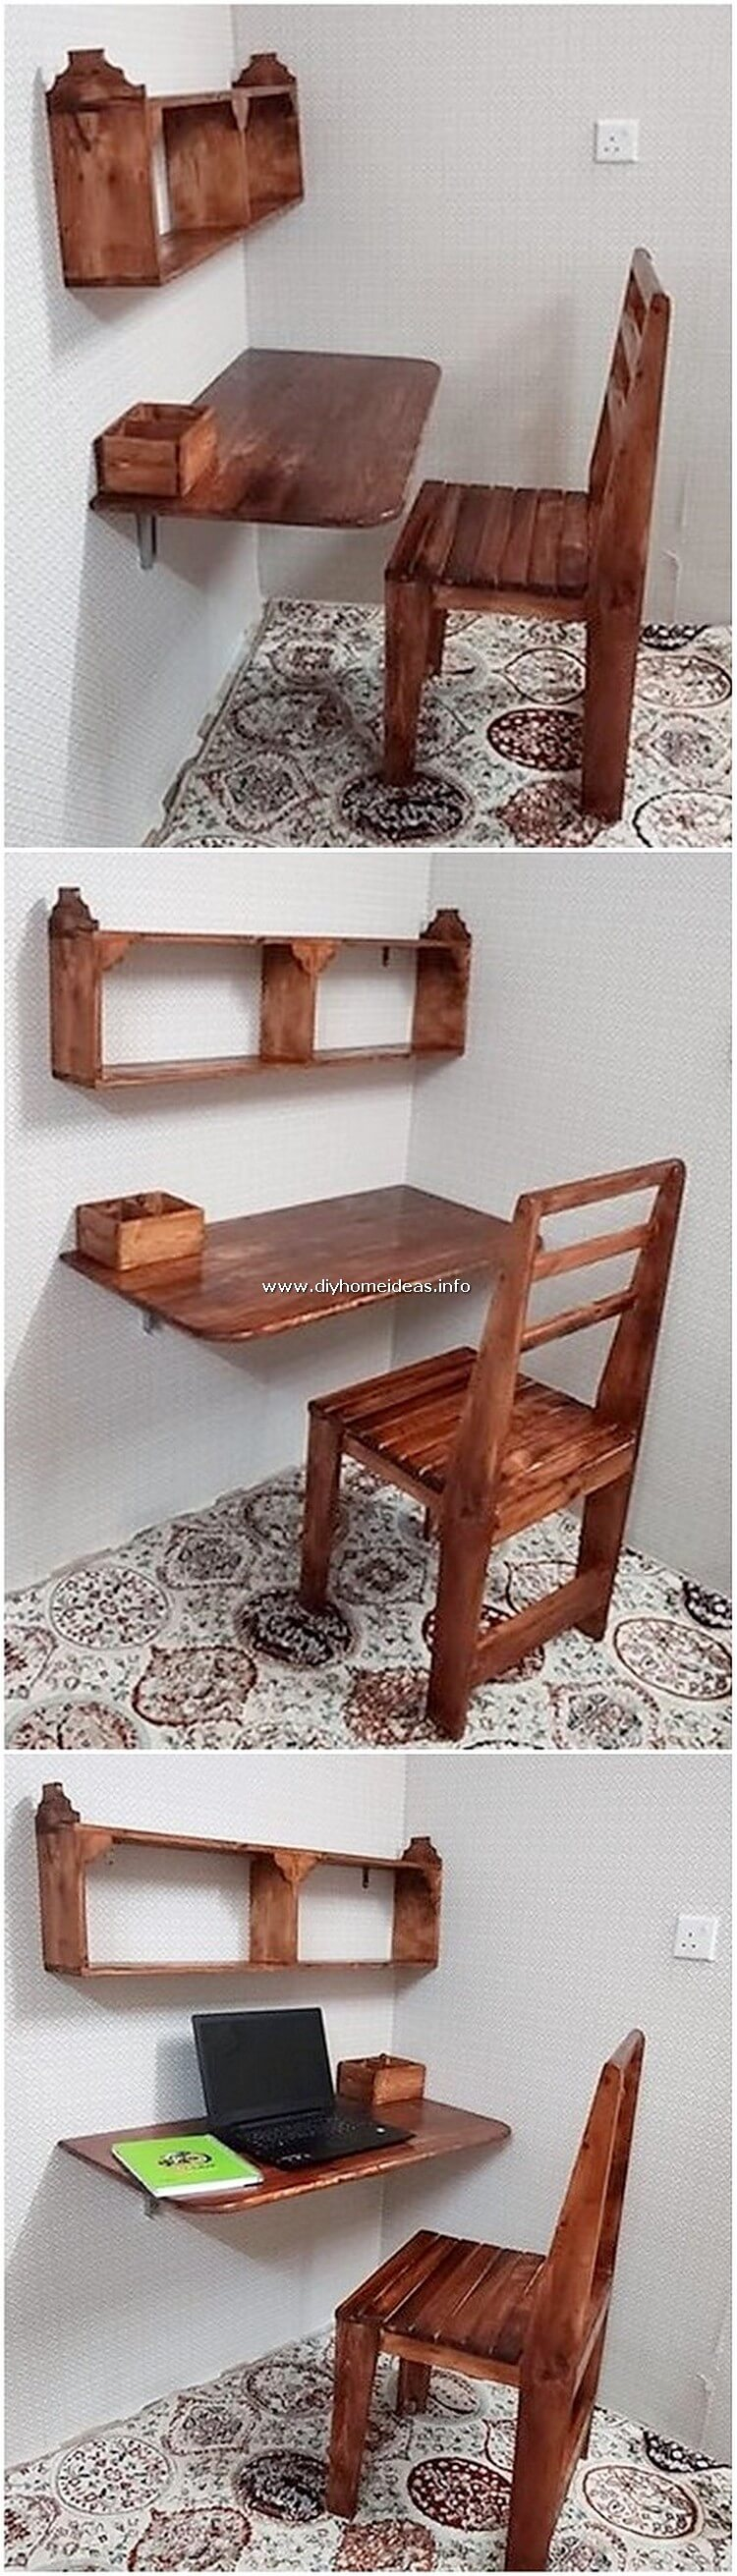 Pallet Folding Desk Table and Chairs